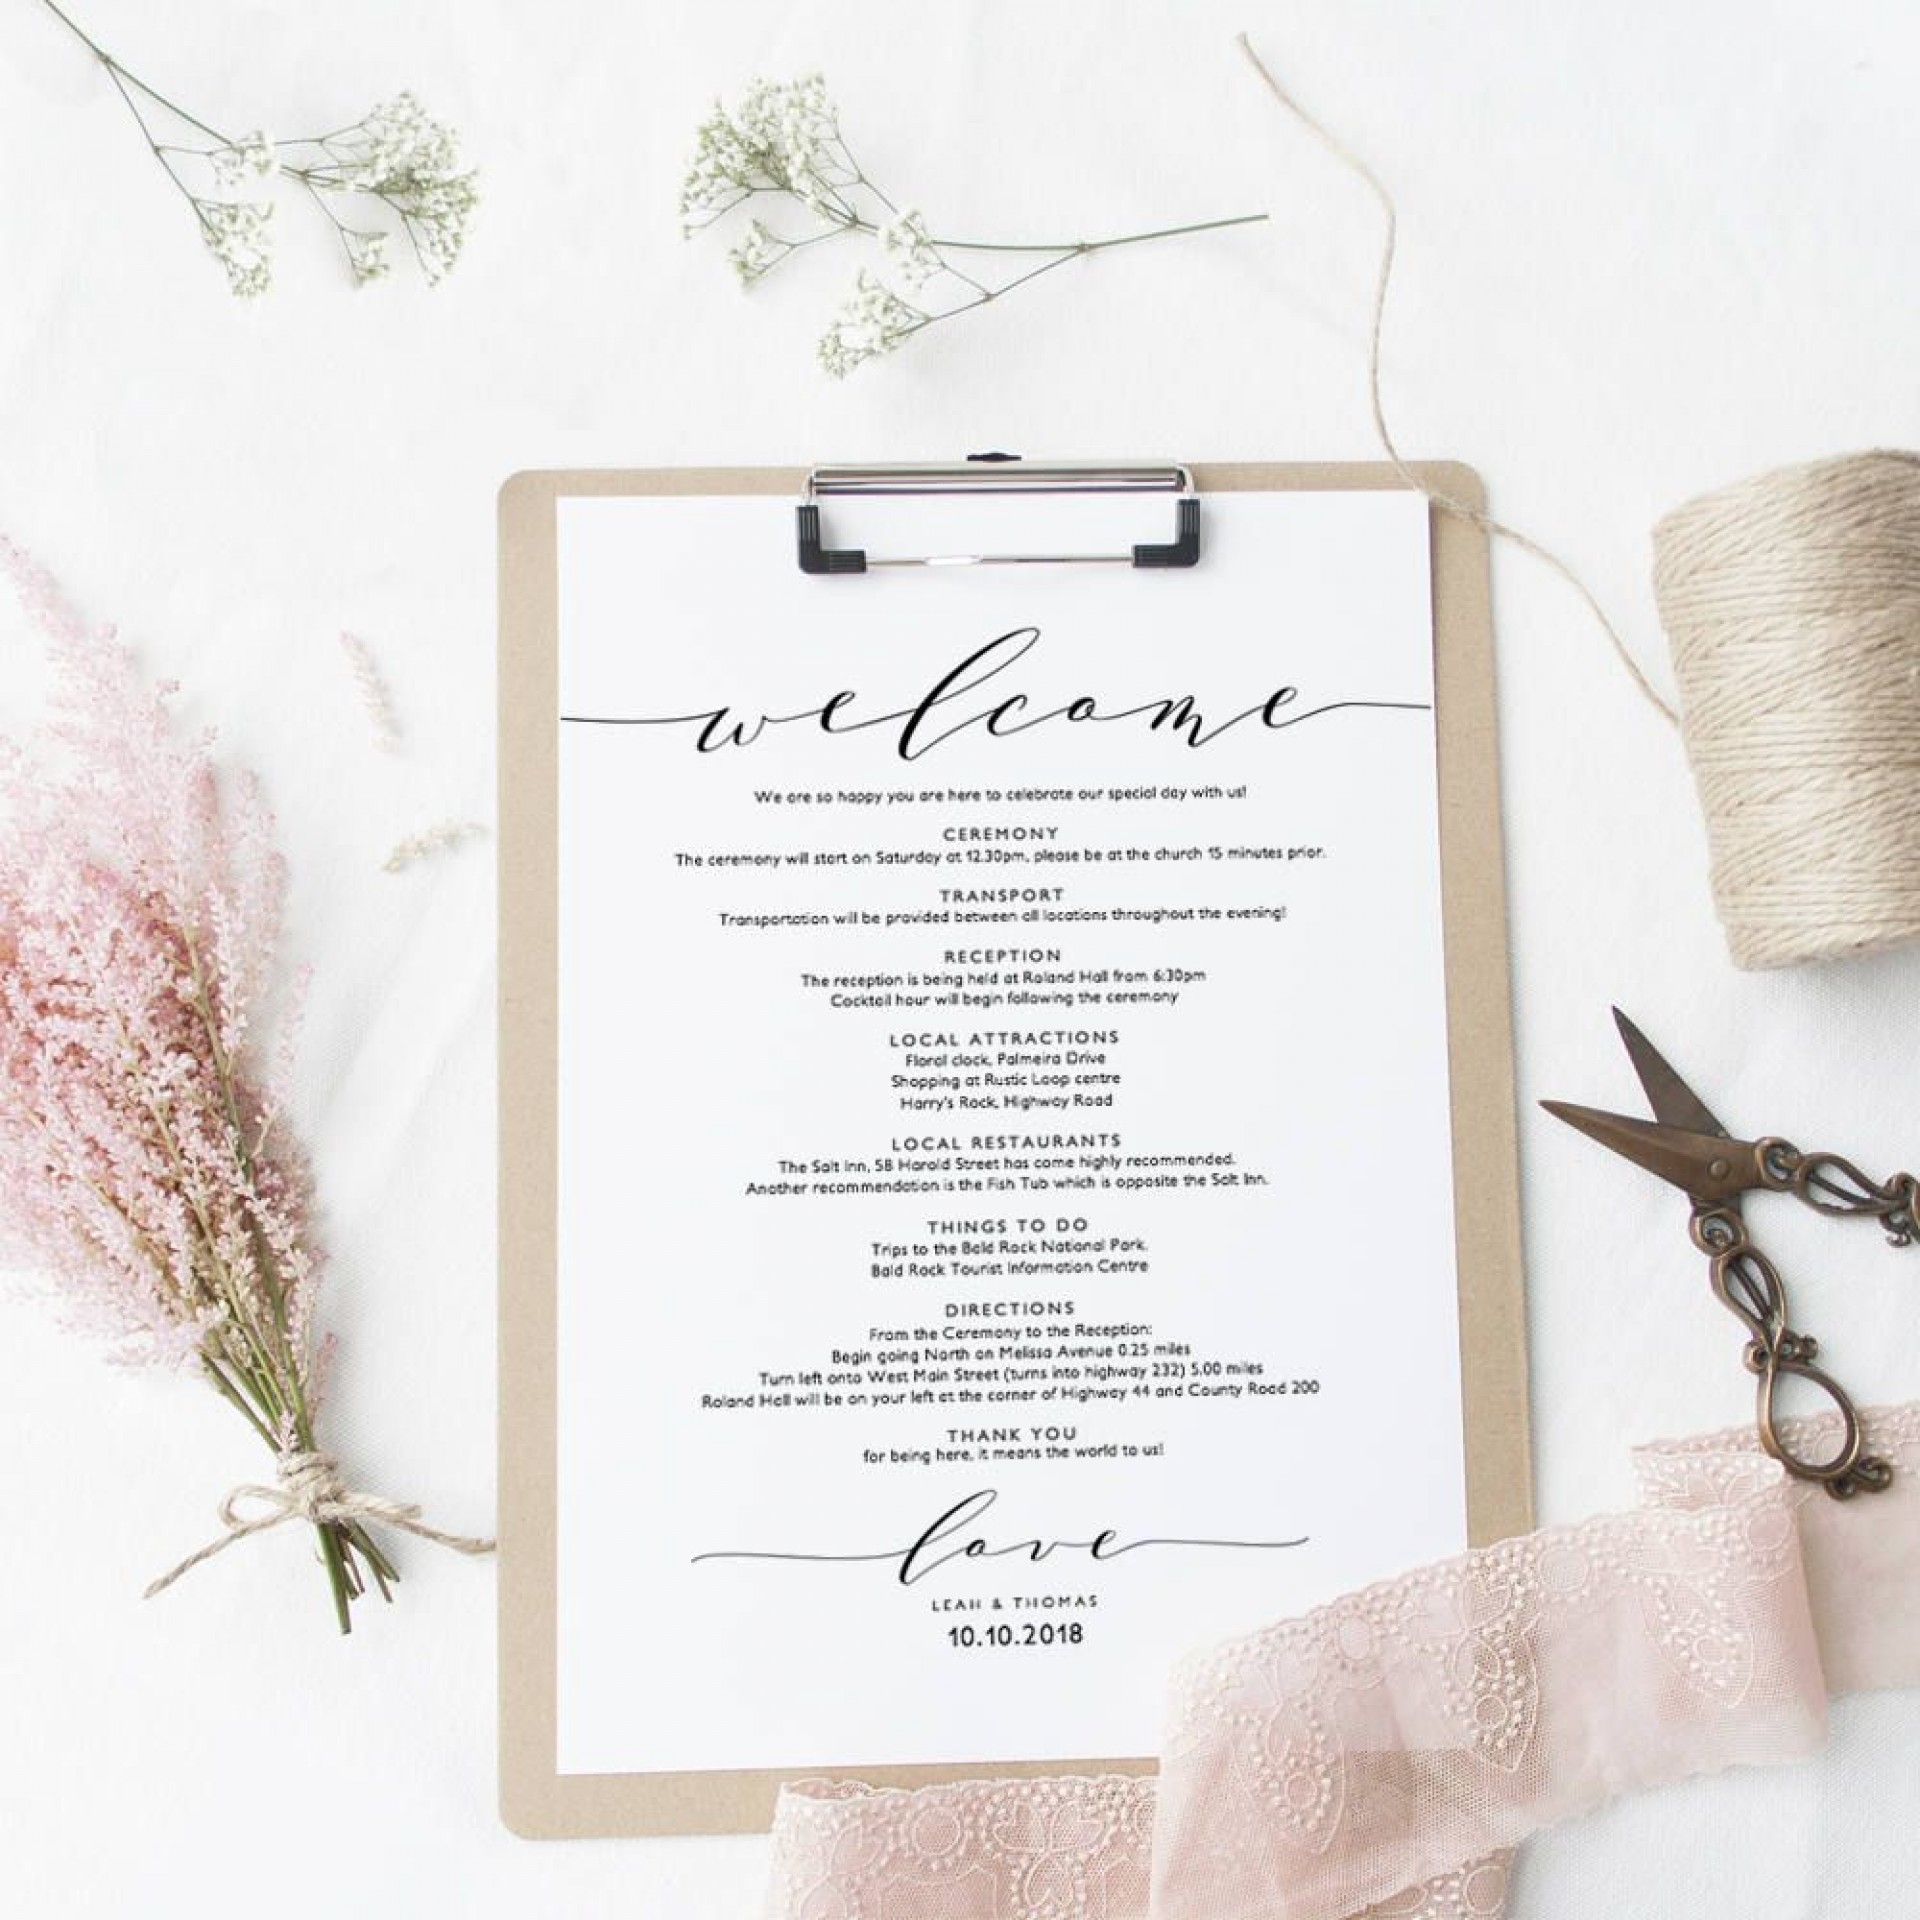 005 Archaicawful Wedding Welcome Letter Template Download Highest Quality 1920